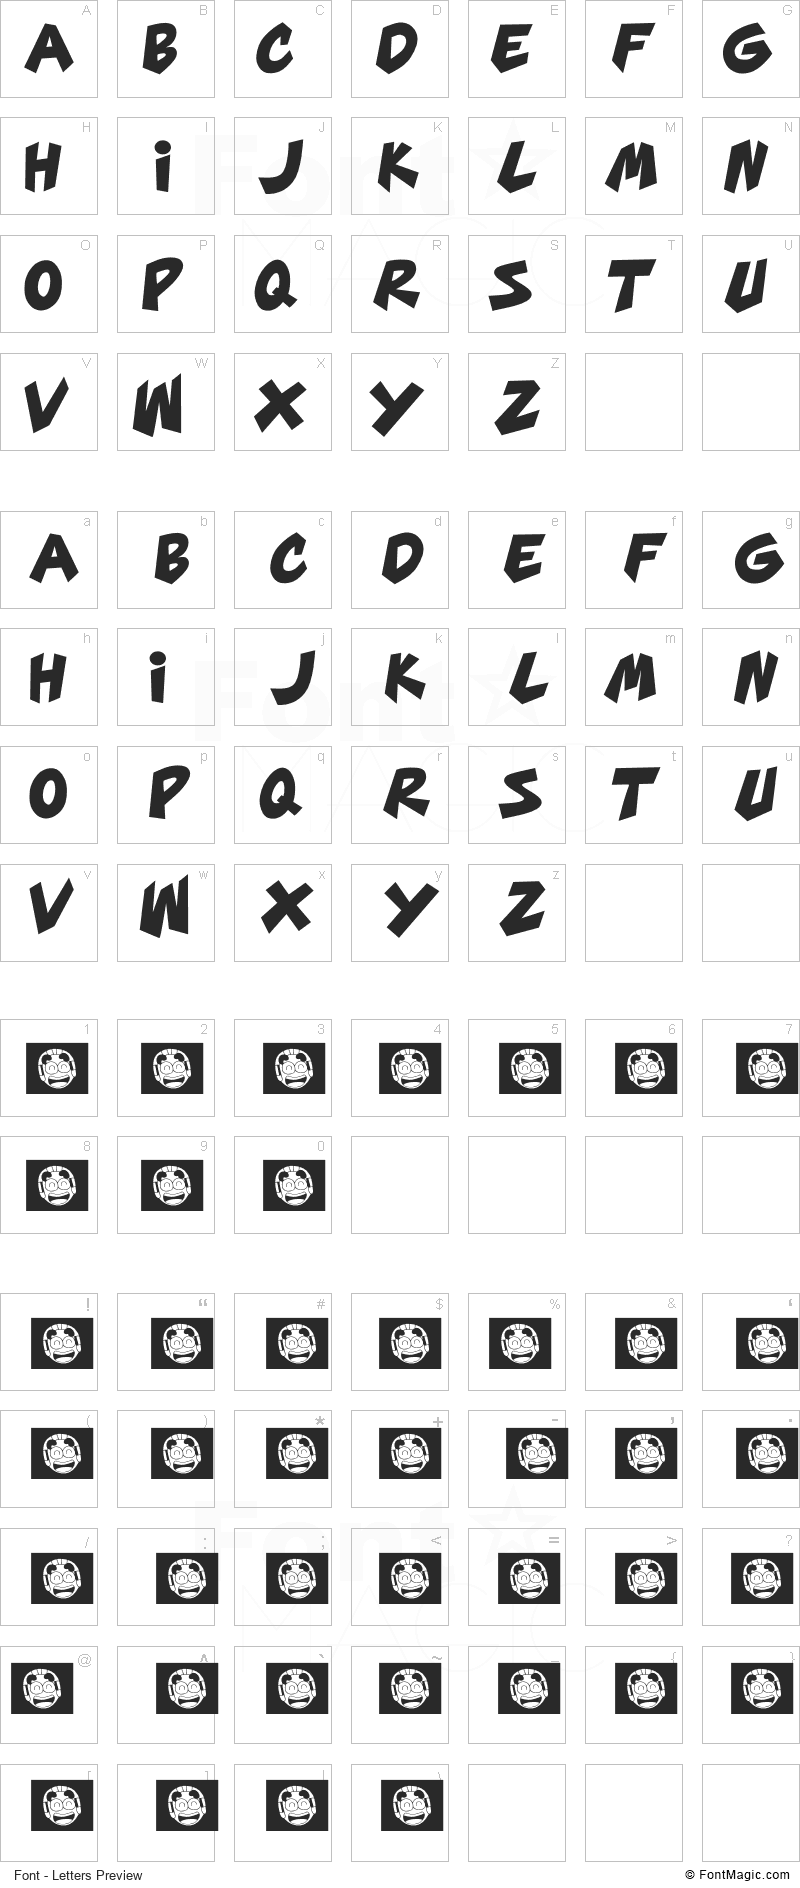 Mars Mellow Font - All Latters Preview Chart